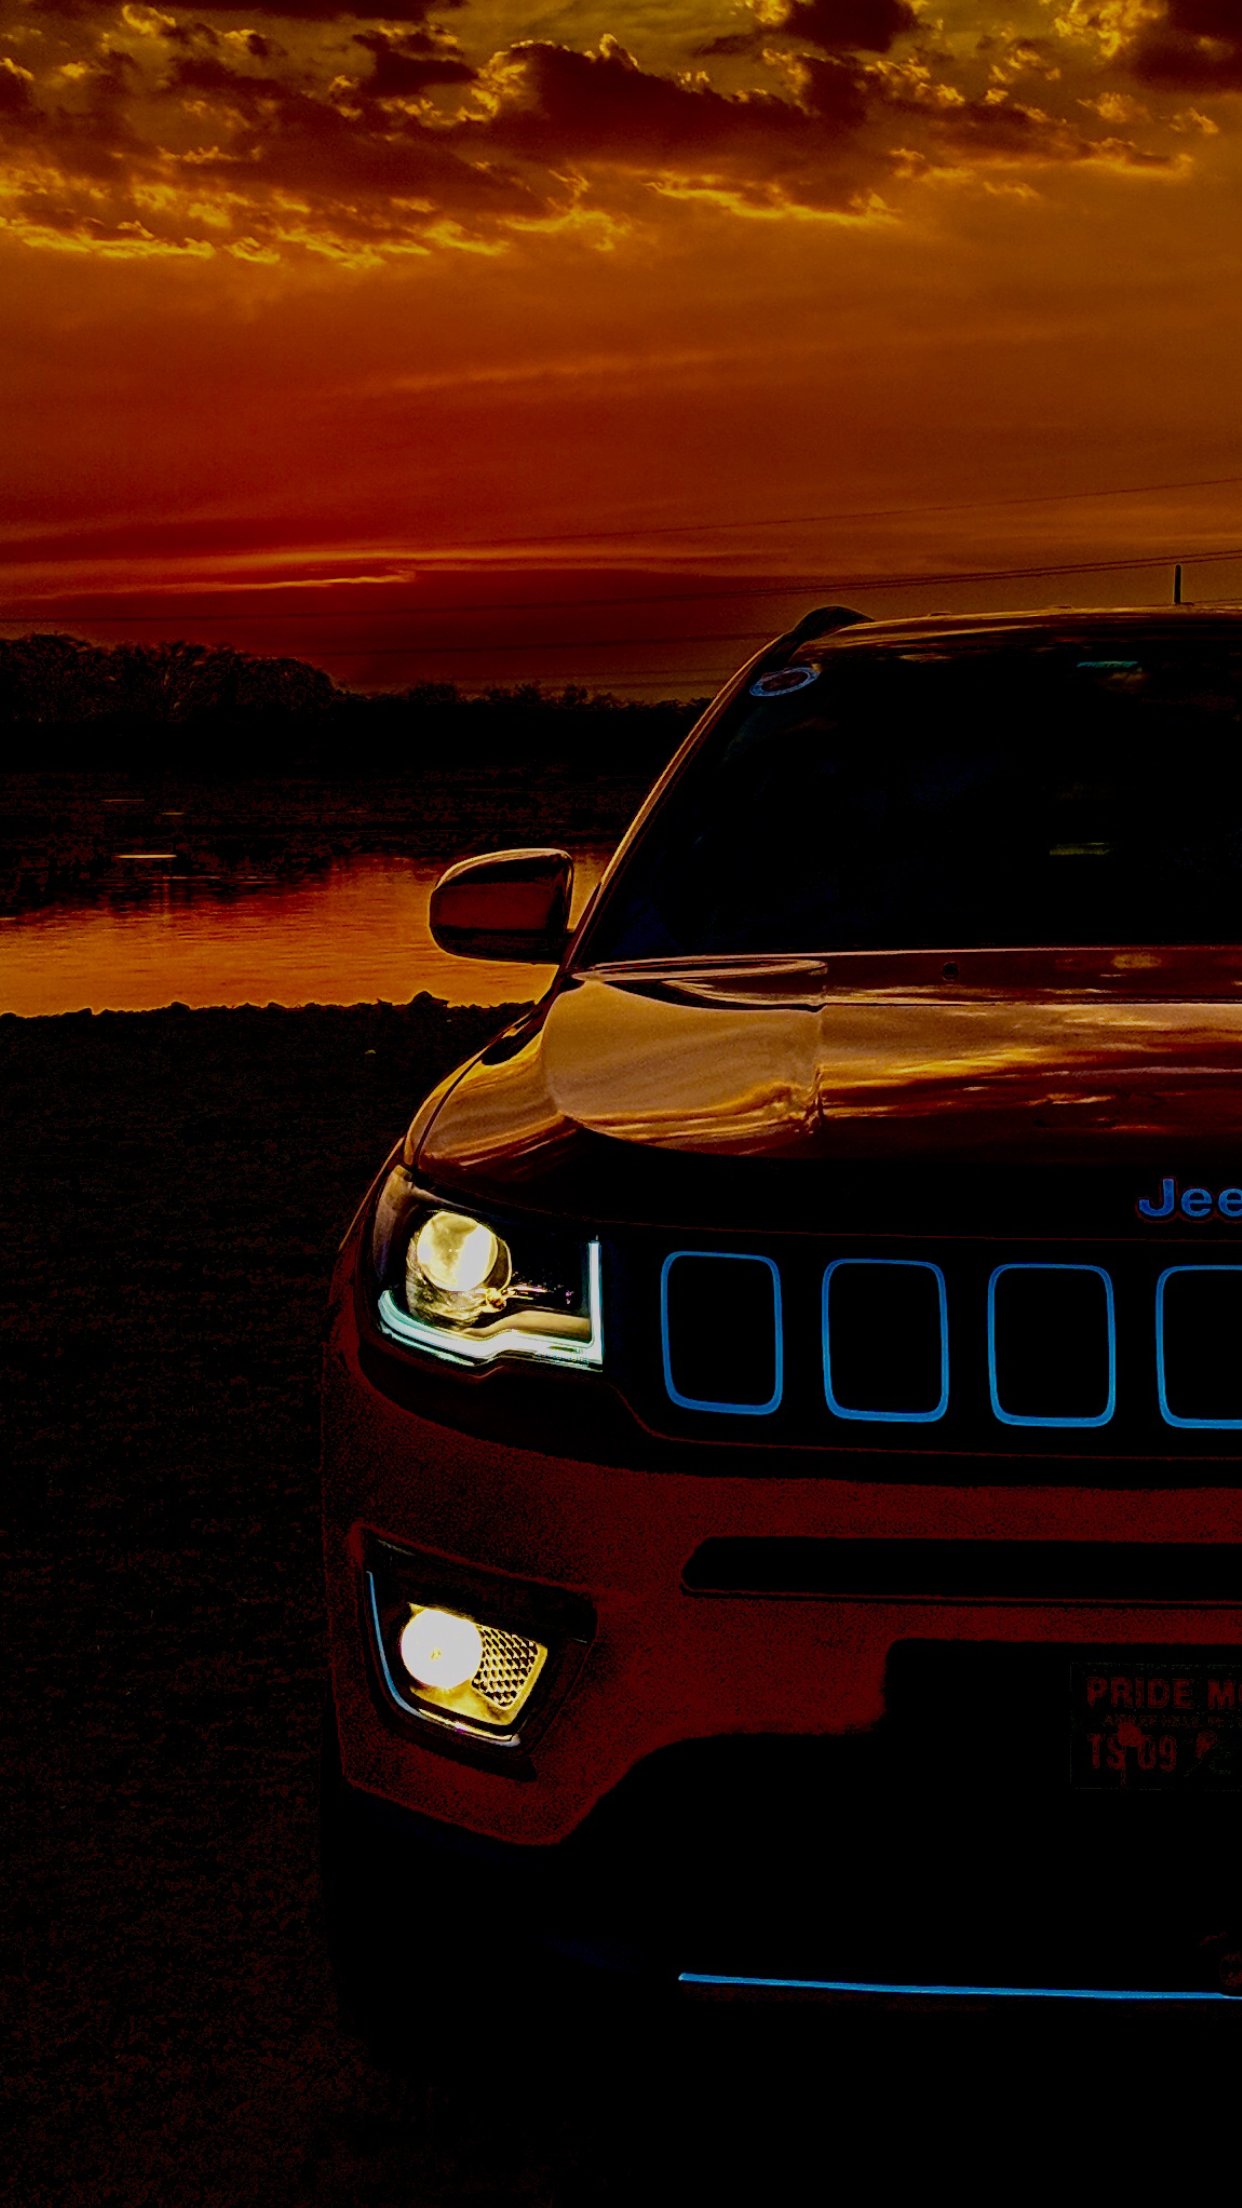 Jeep Compass Iphone Wallpaper Jeep Wallpaper Jeep Compass